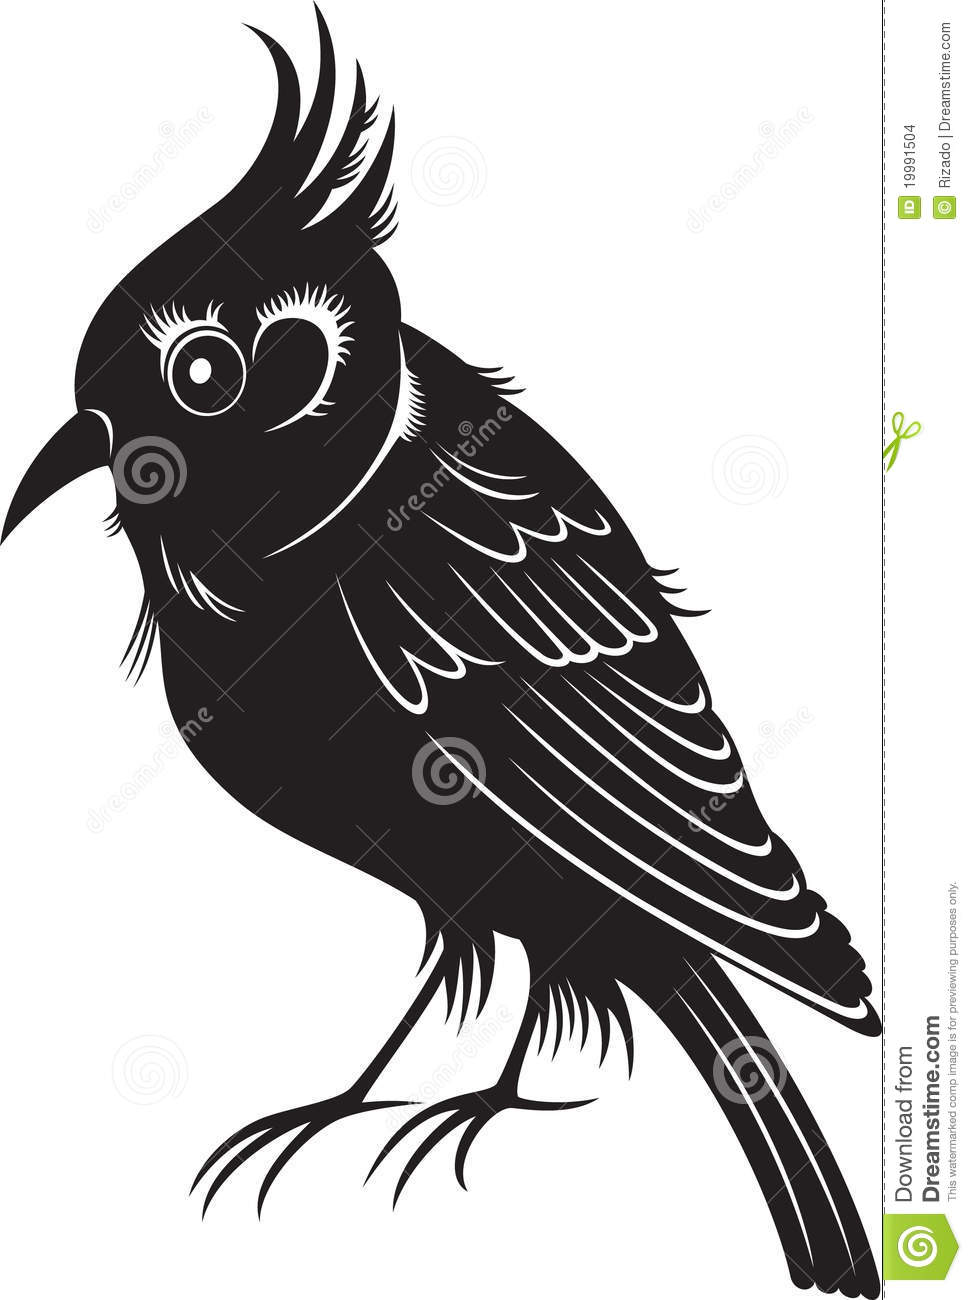 Little black cartoon bird stock images image 19991504 for Oiseau blanc et noir